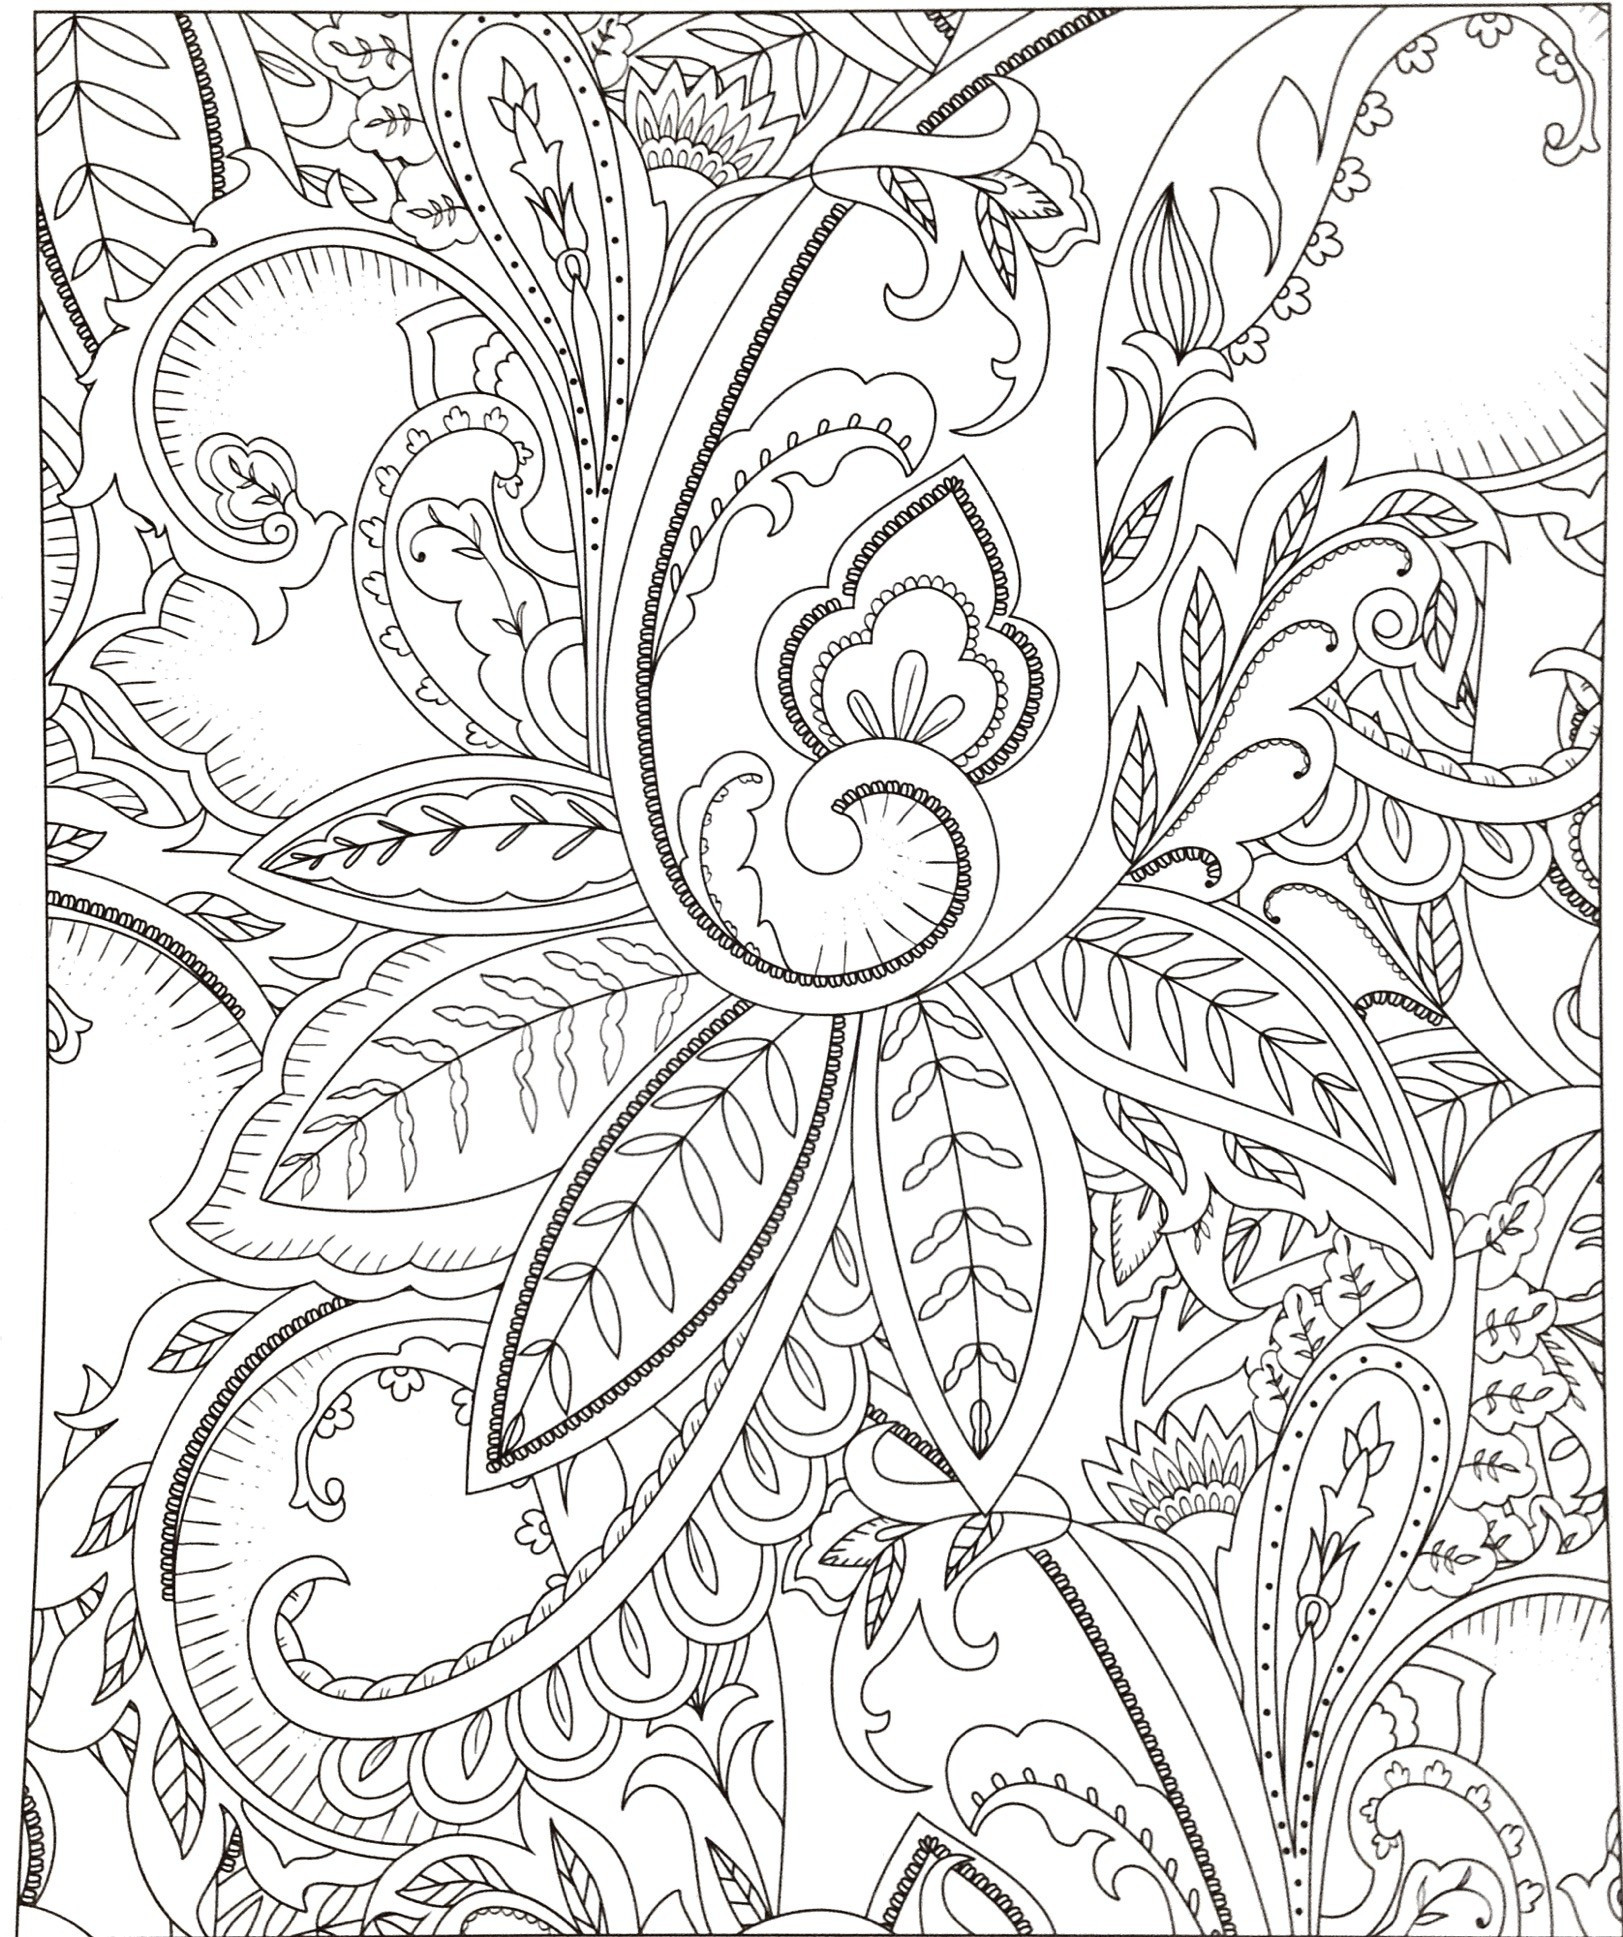 Colorama Coloring Book Pages  Colorama Coloring Pages